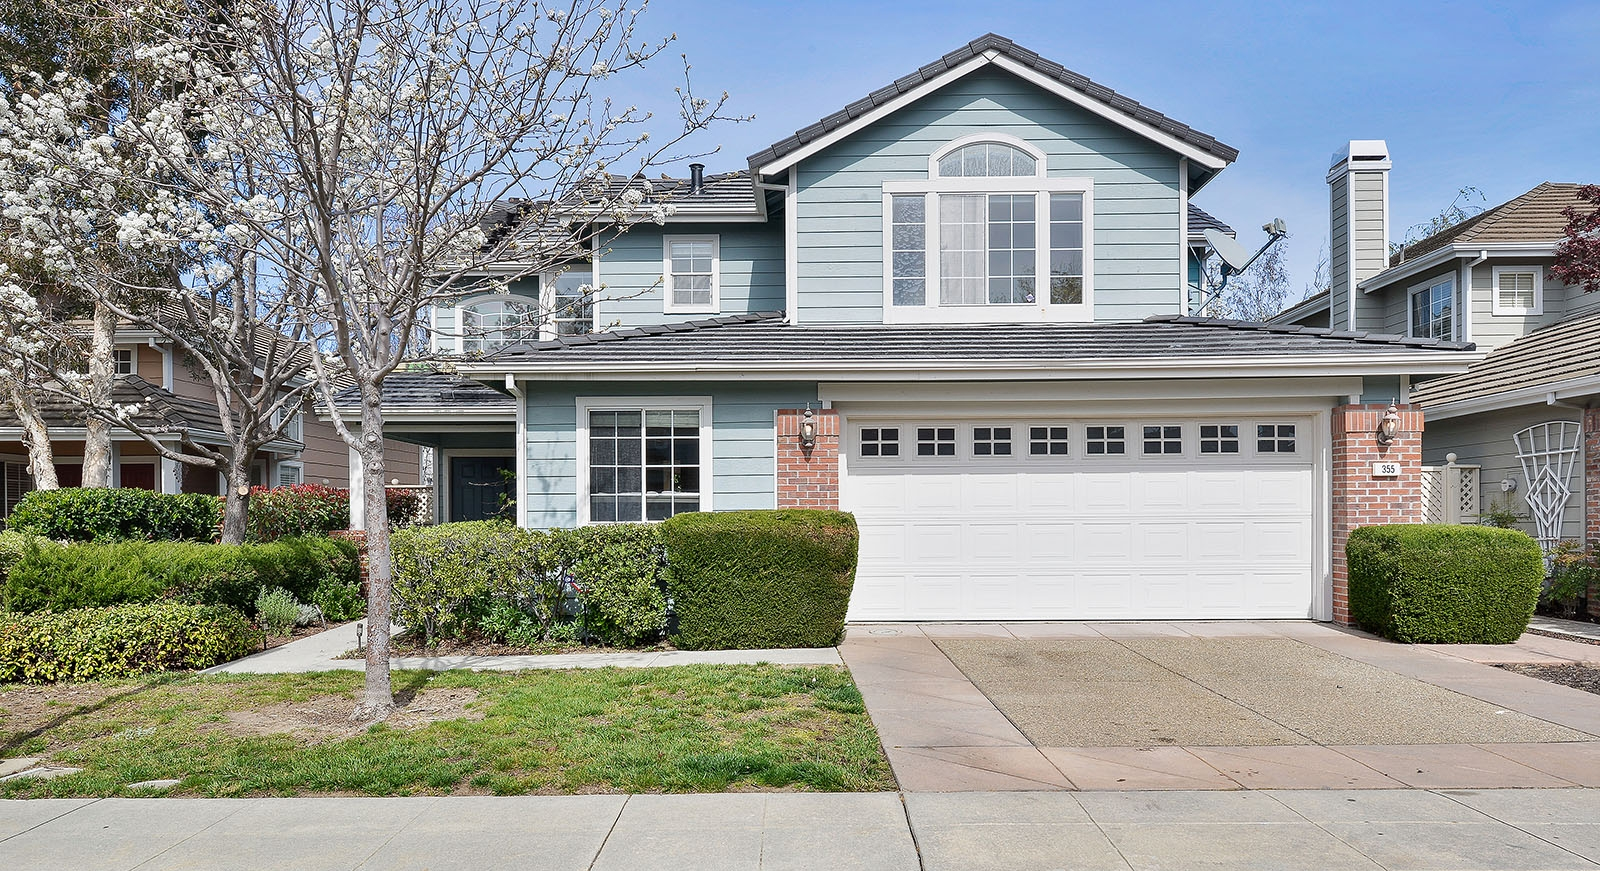 355 Mindanao Dr, Redwood Shores | $1,825,000